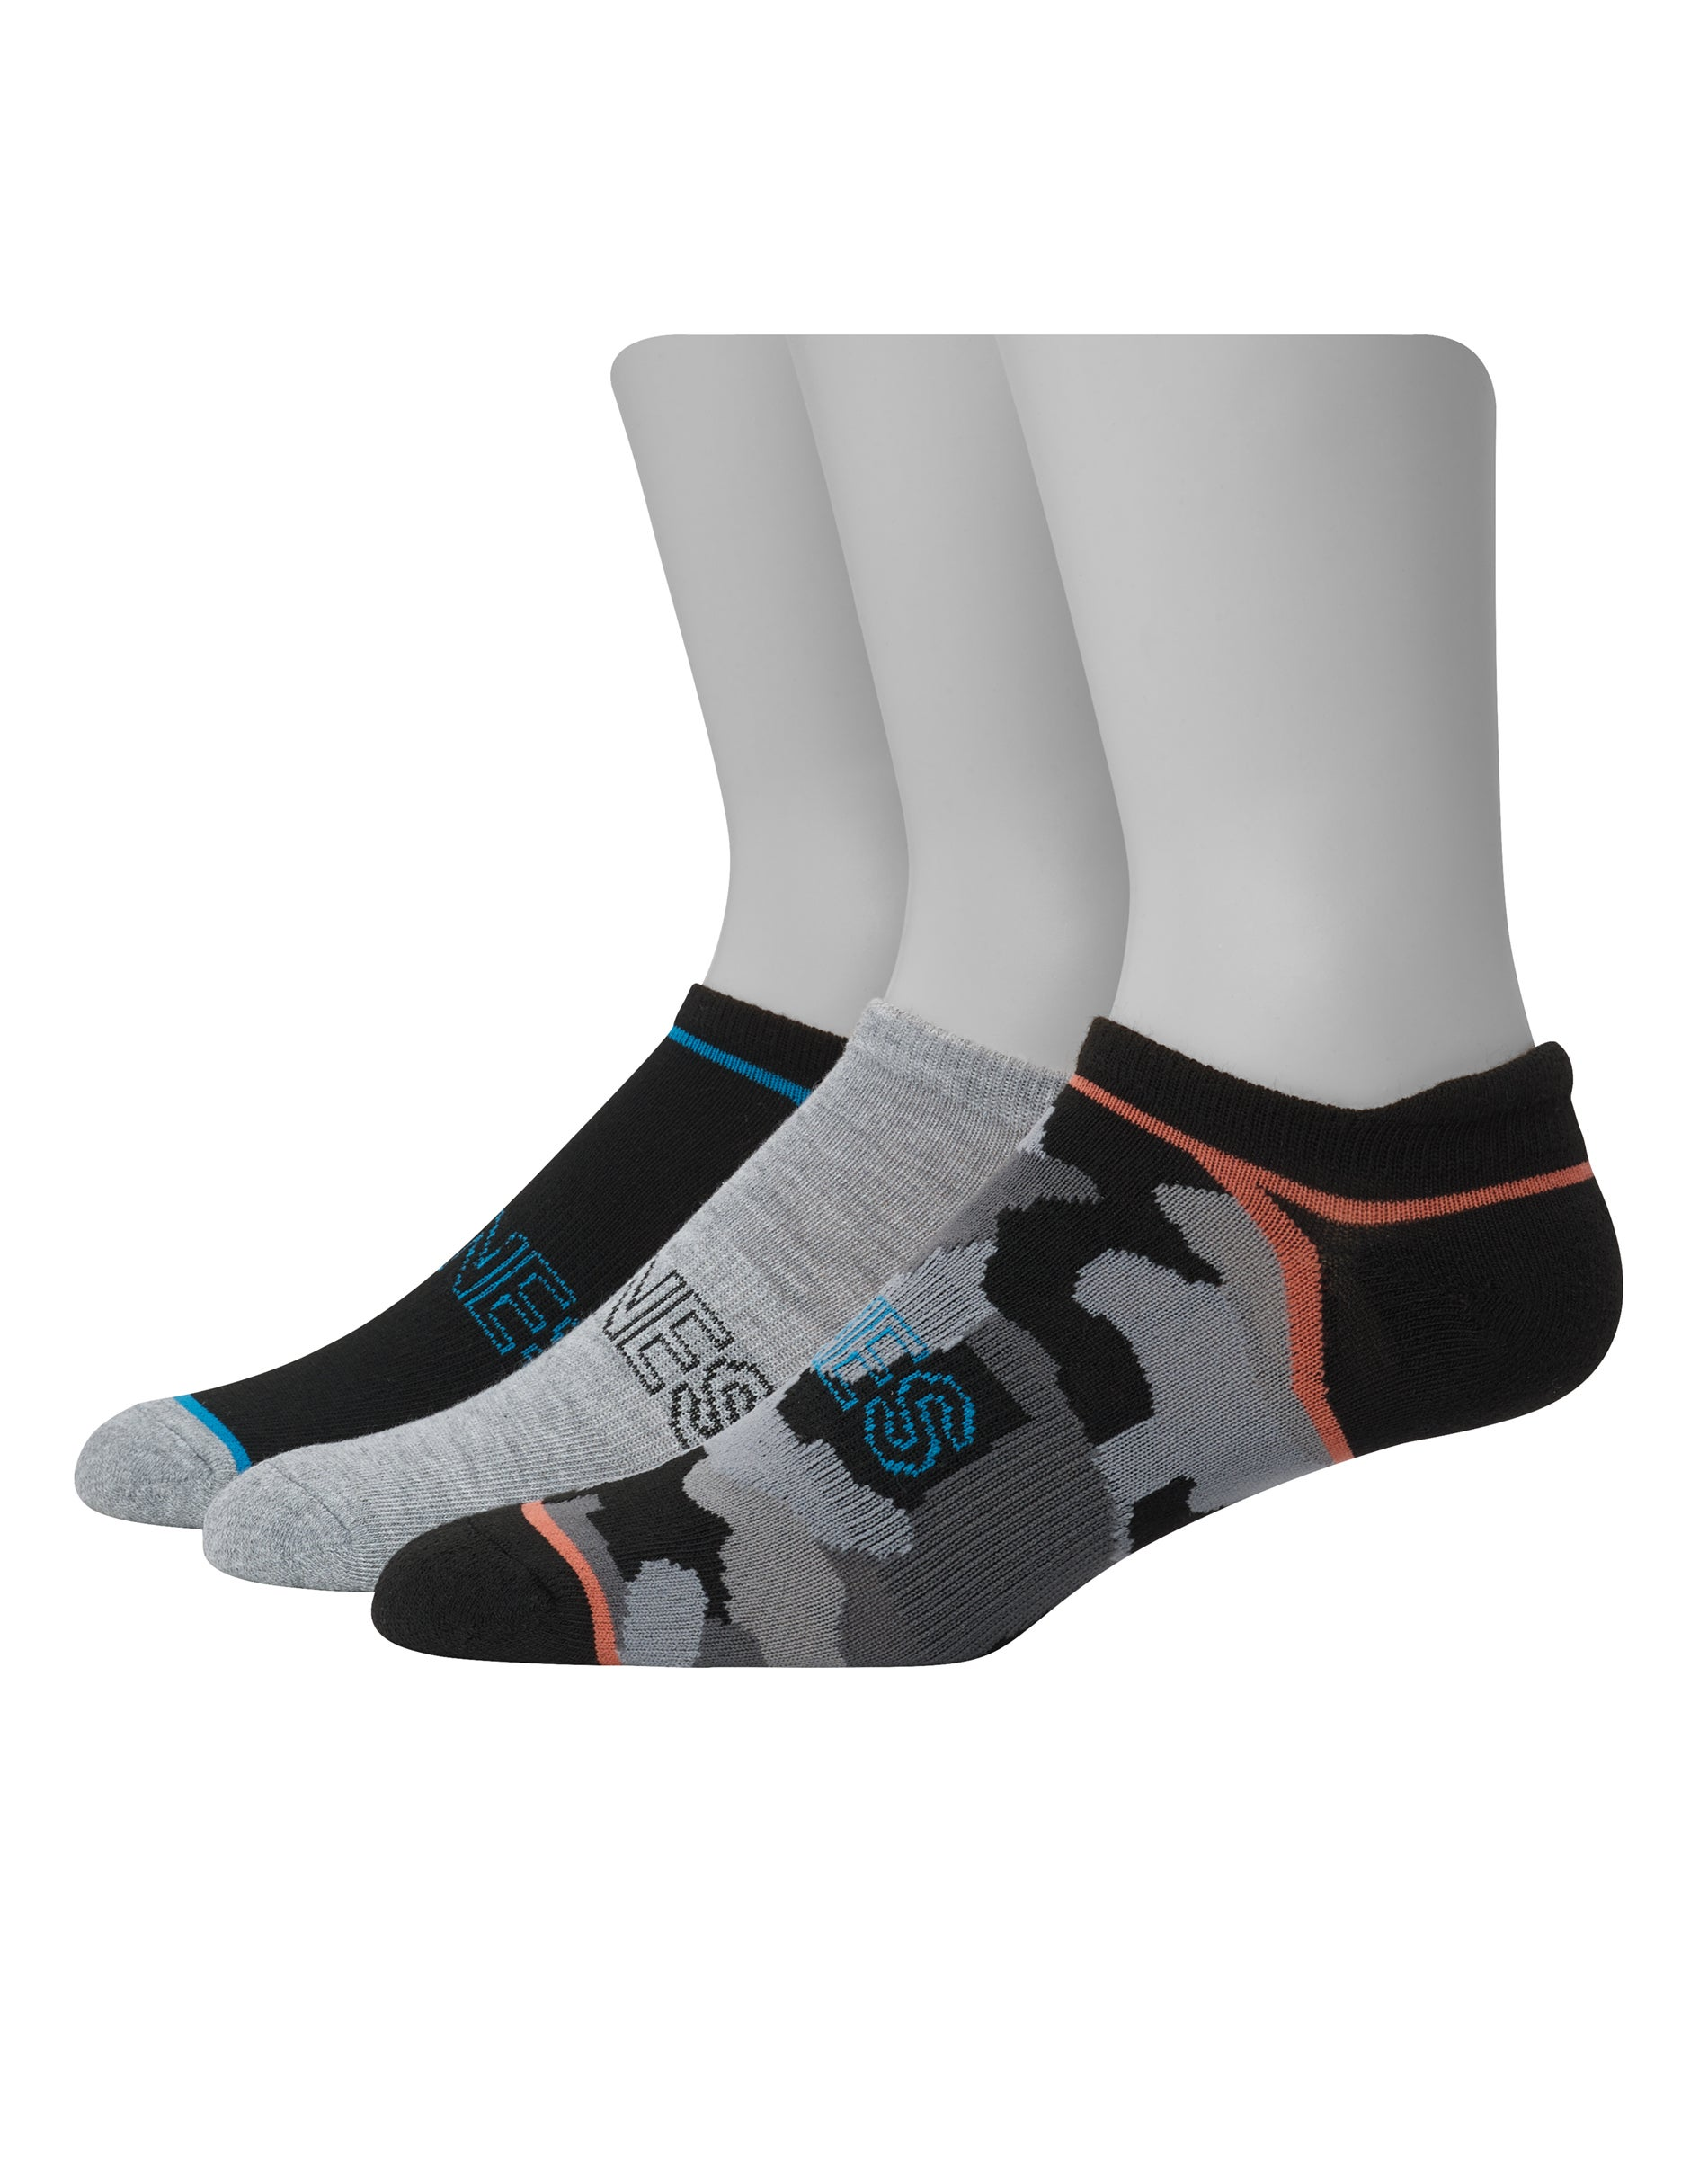 Comfort Sport Crew Socks for Men /& Women in White and Black Color Knee High 2-Pack No Heel Socks for Boys /& Girls